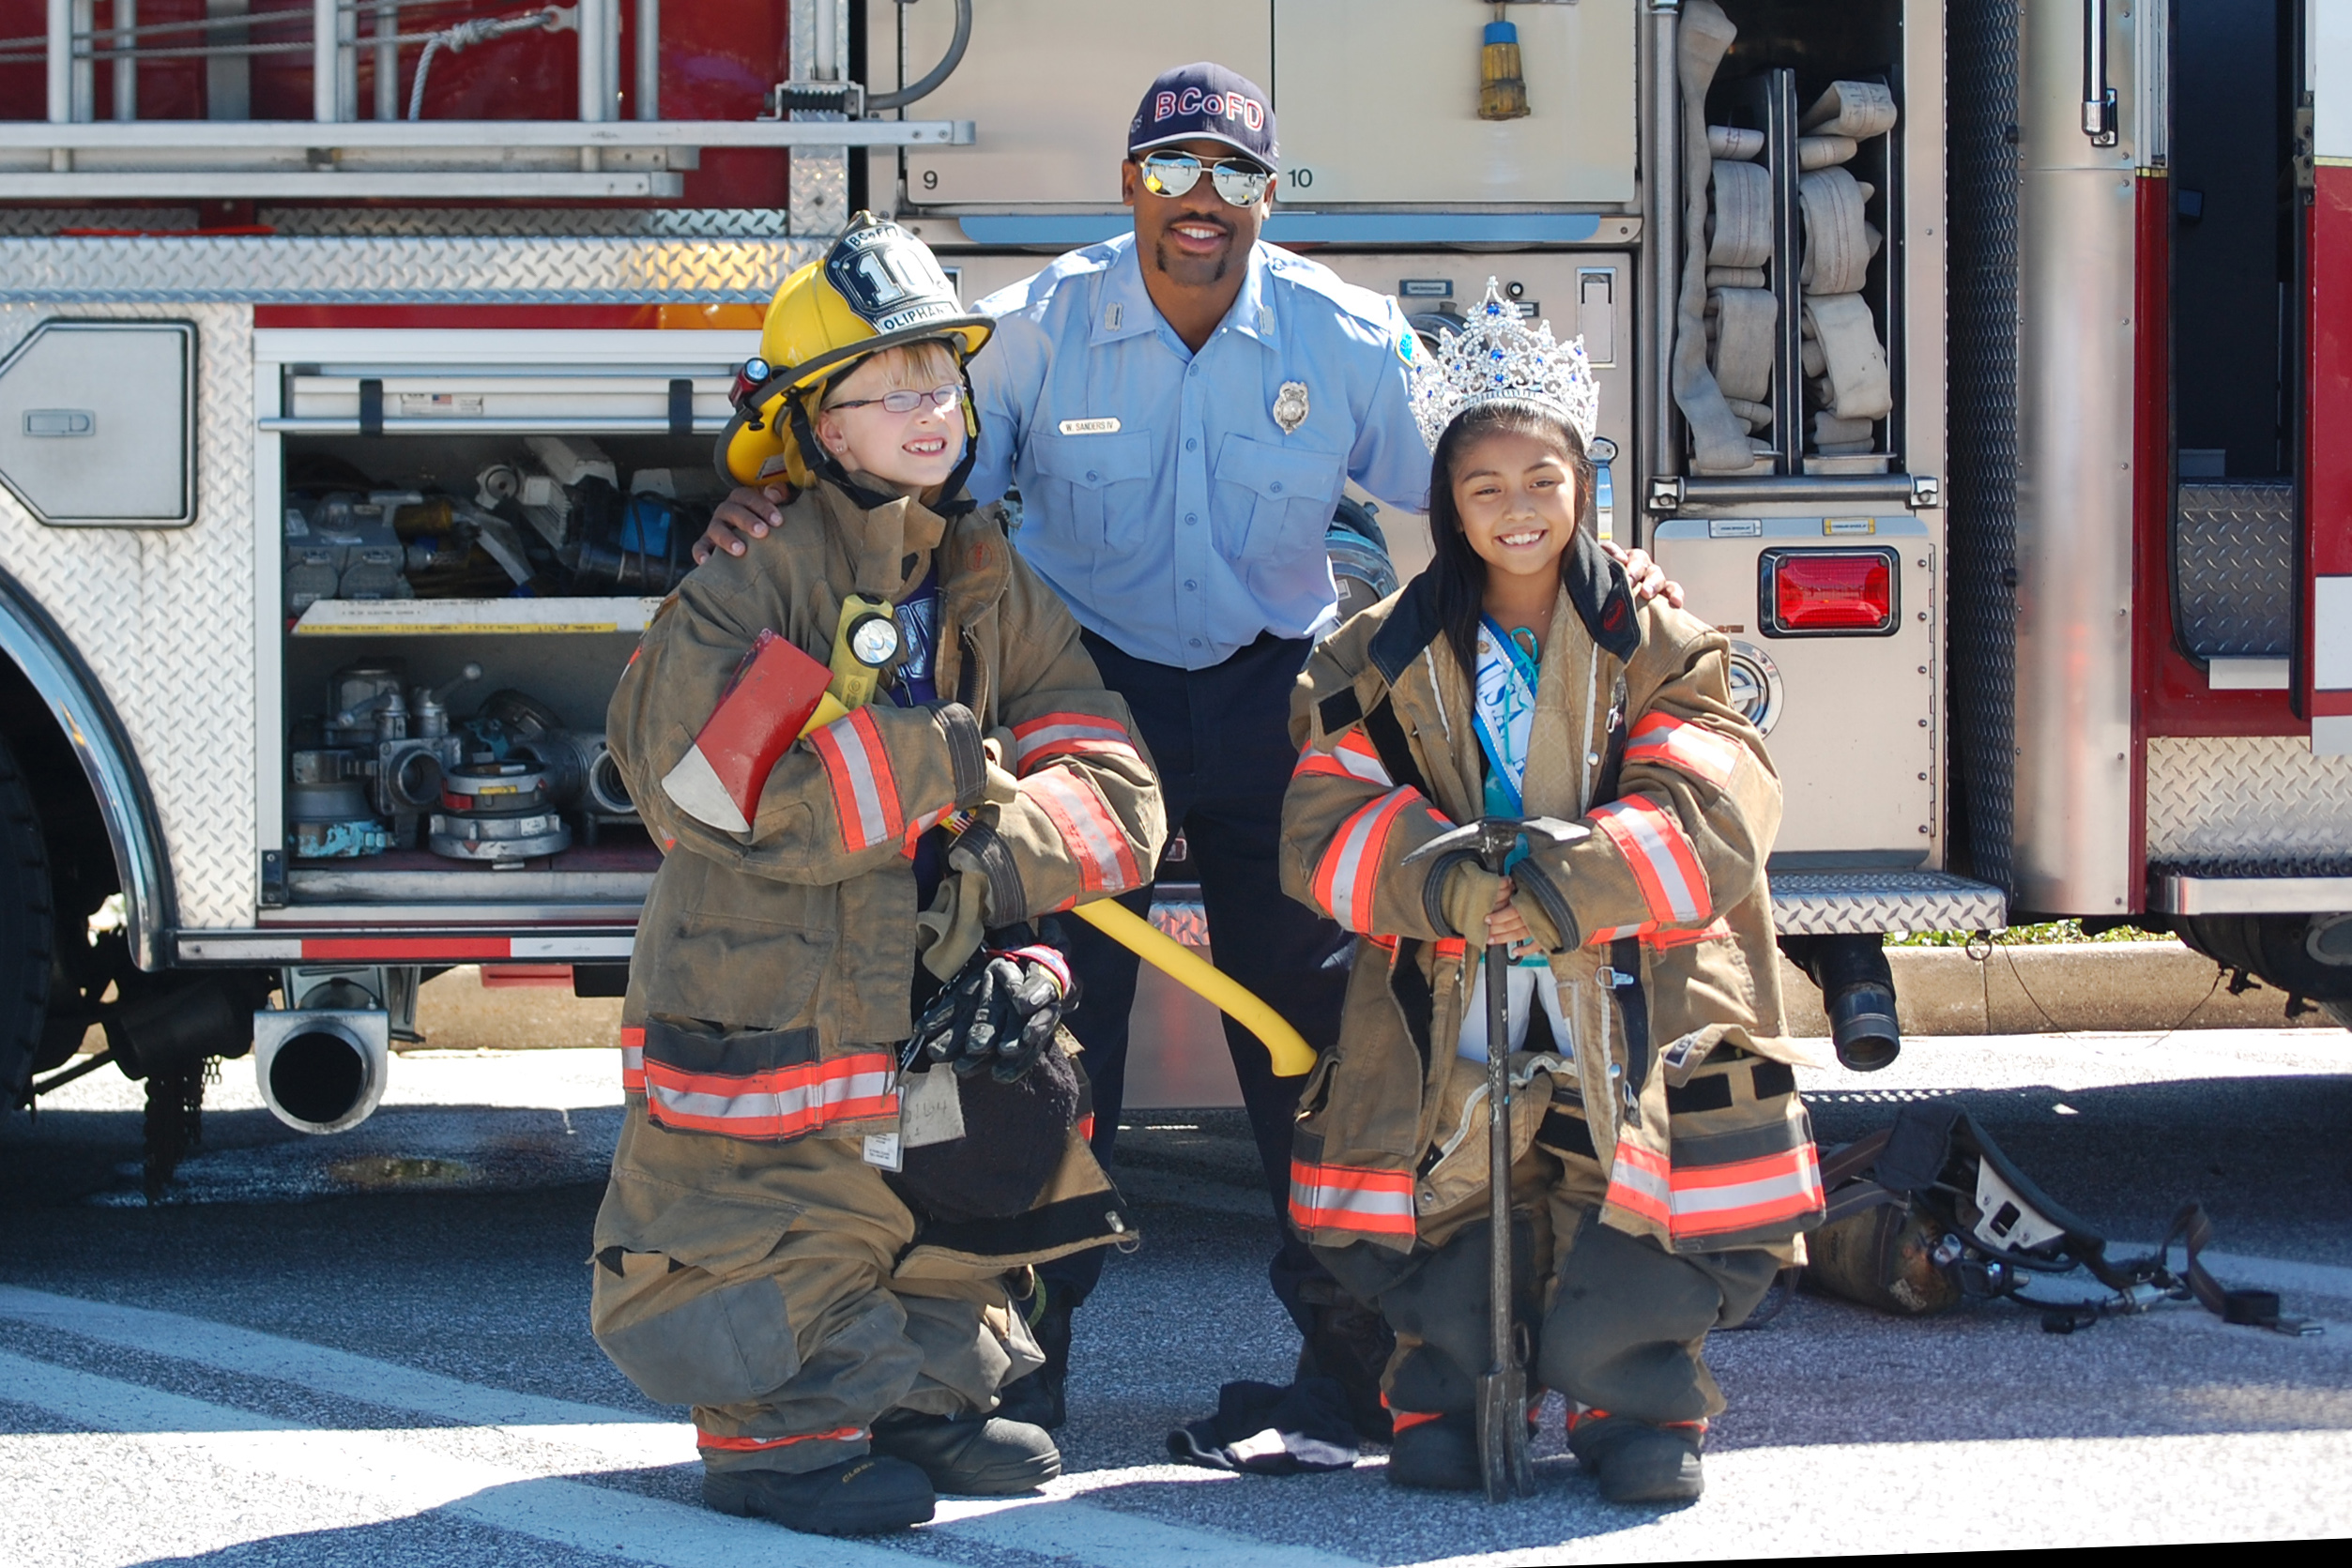 Photo taken at Public Safety Day in 2014.